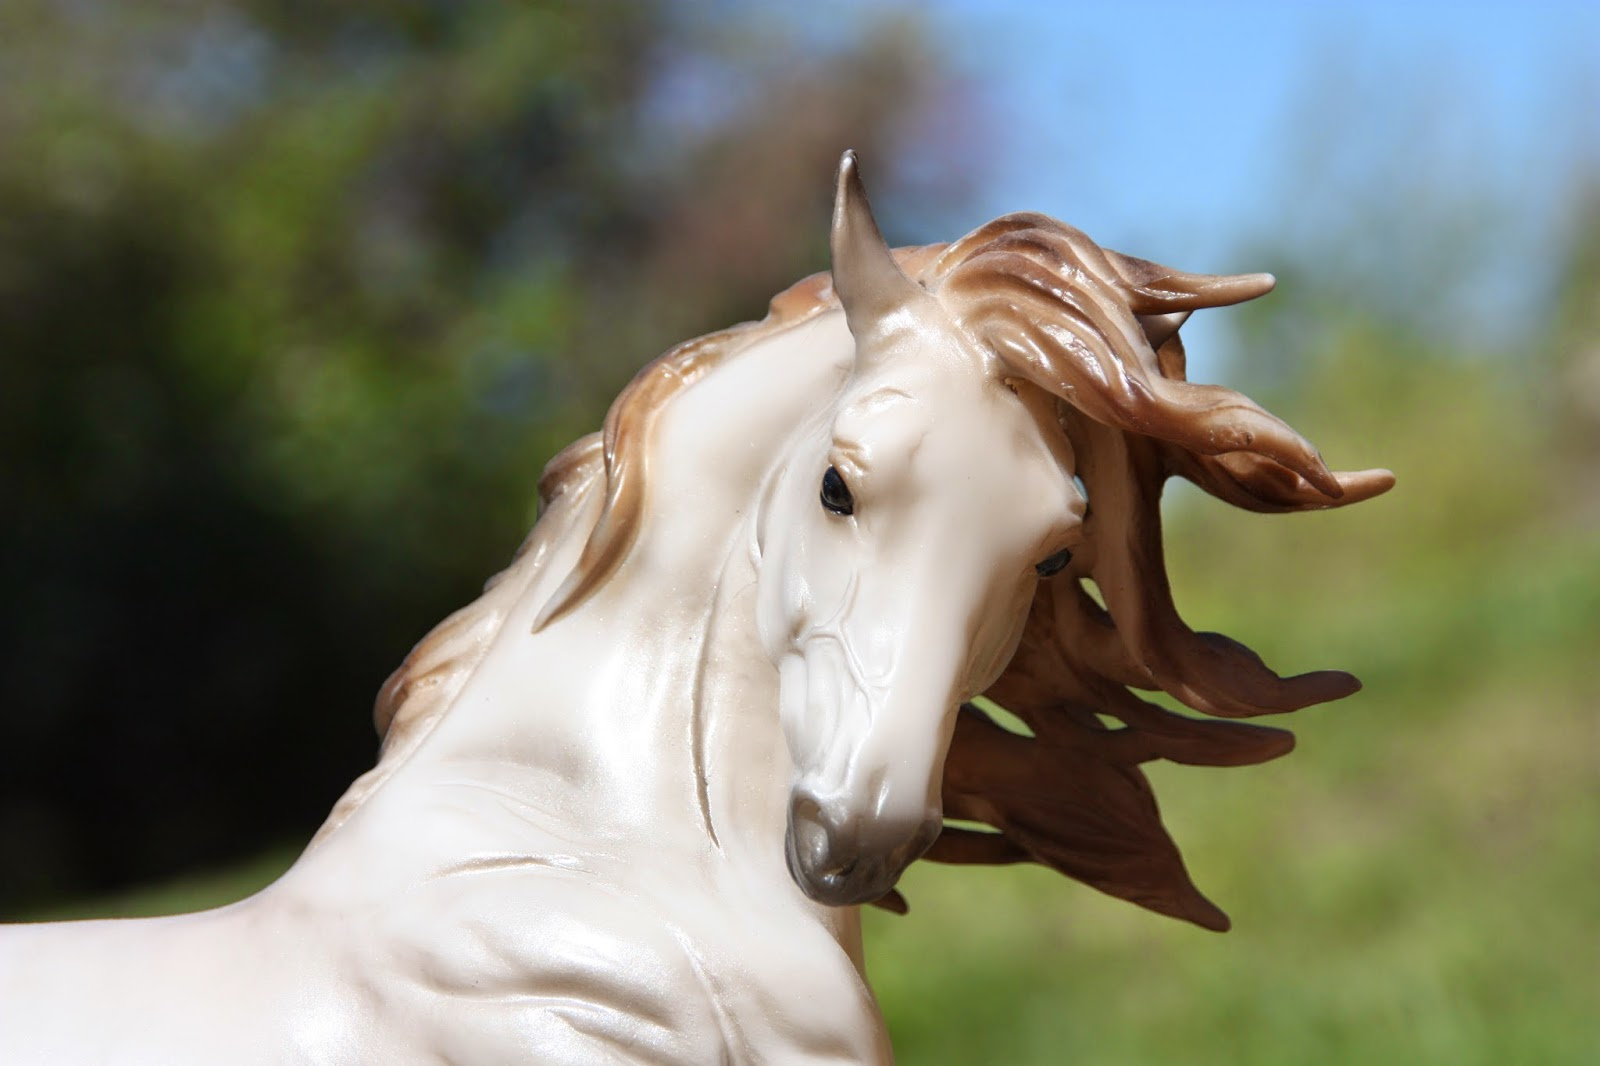 Bits and Spurs: Story of the Horse: Loki